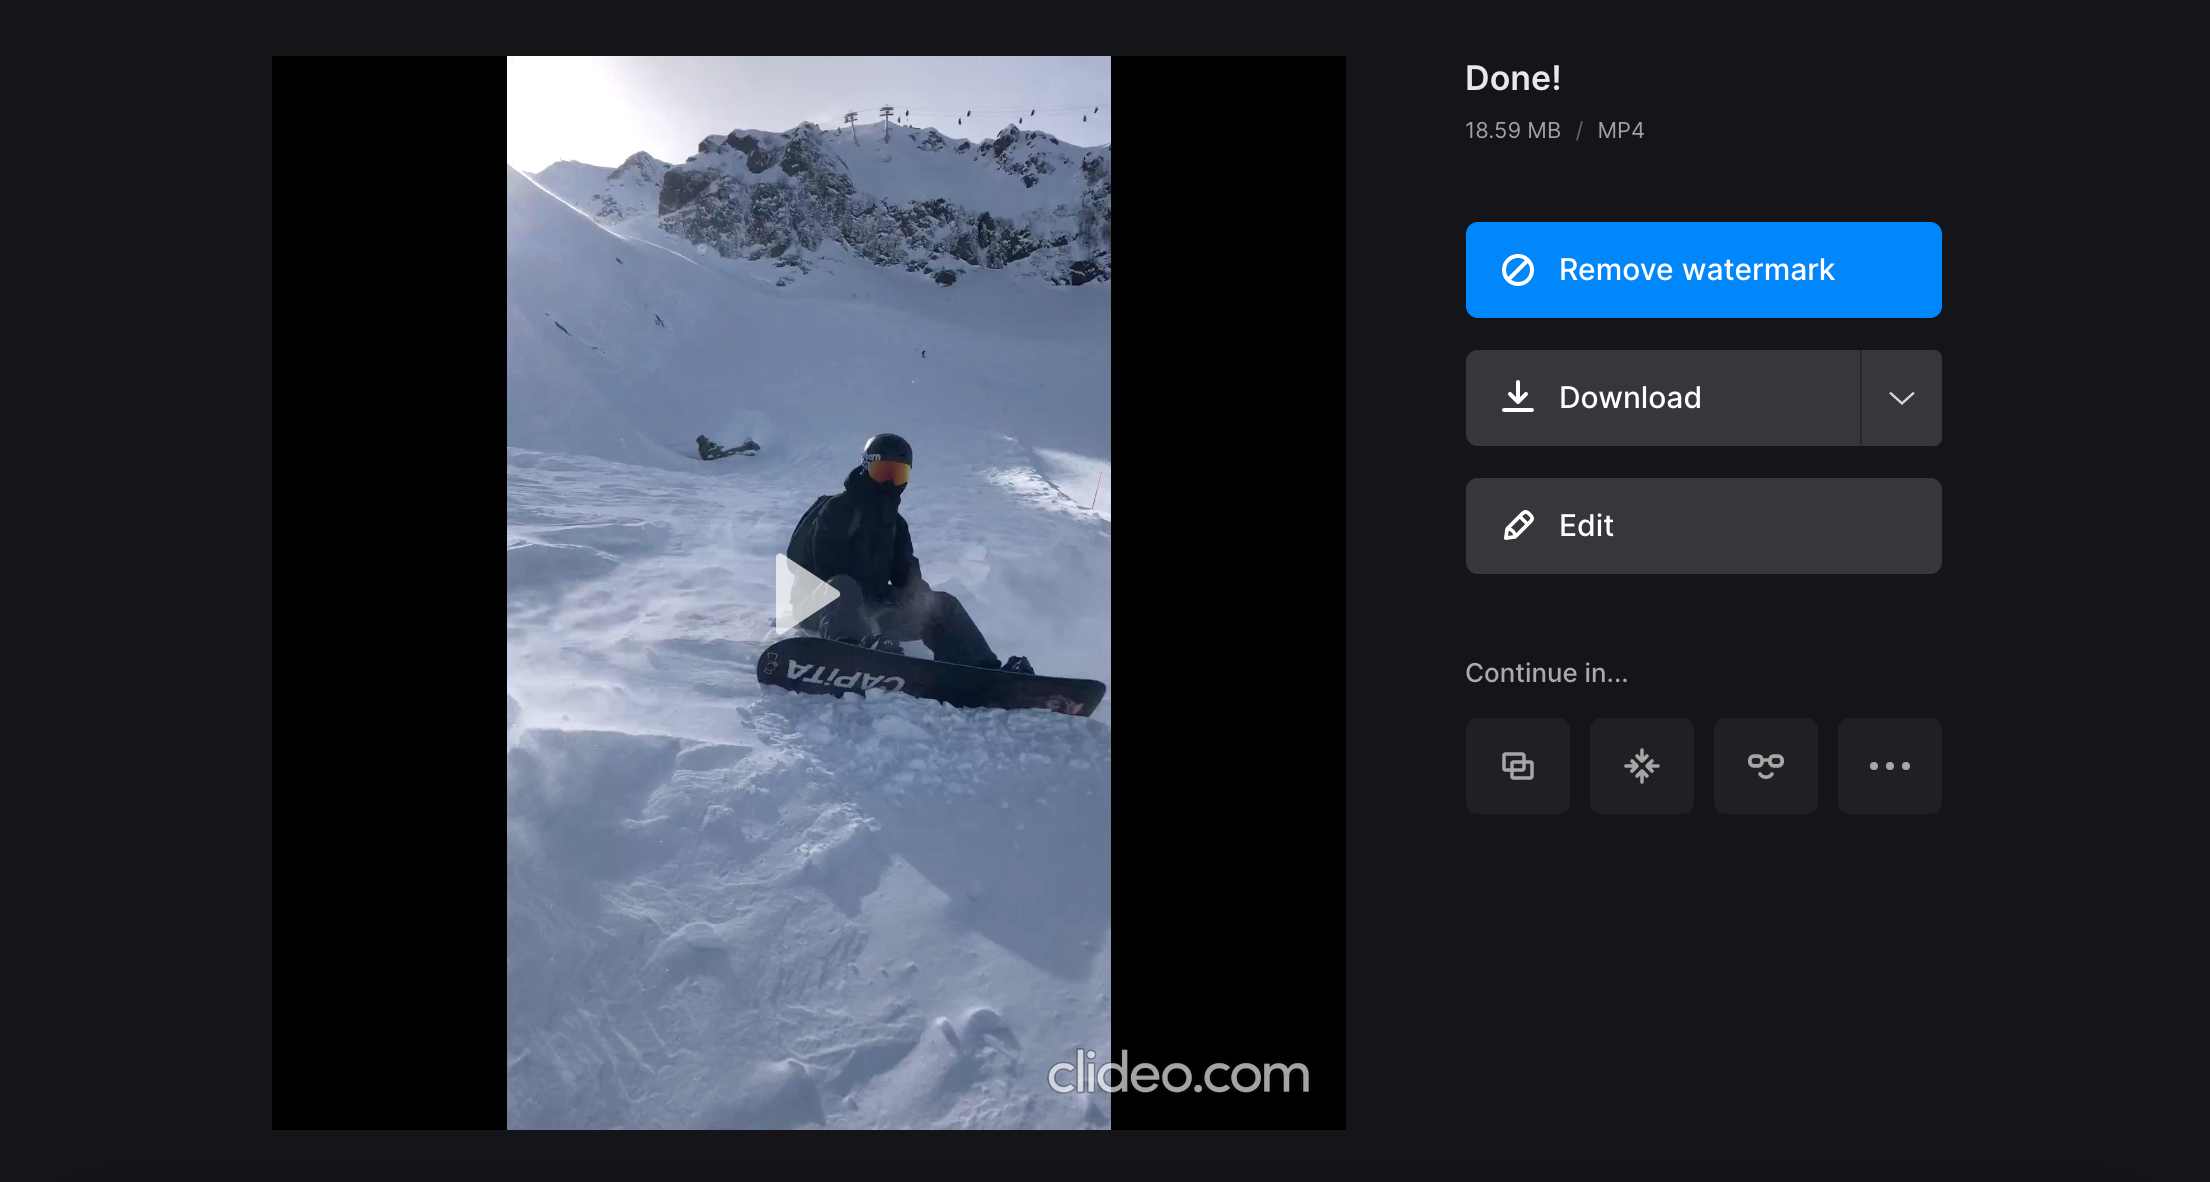 Download video with changed native resolution